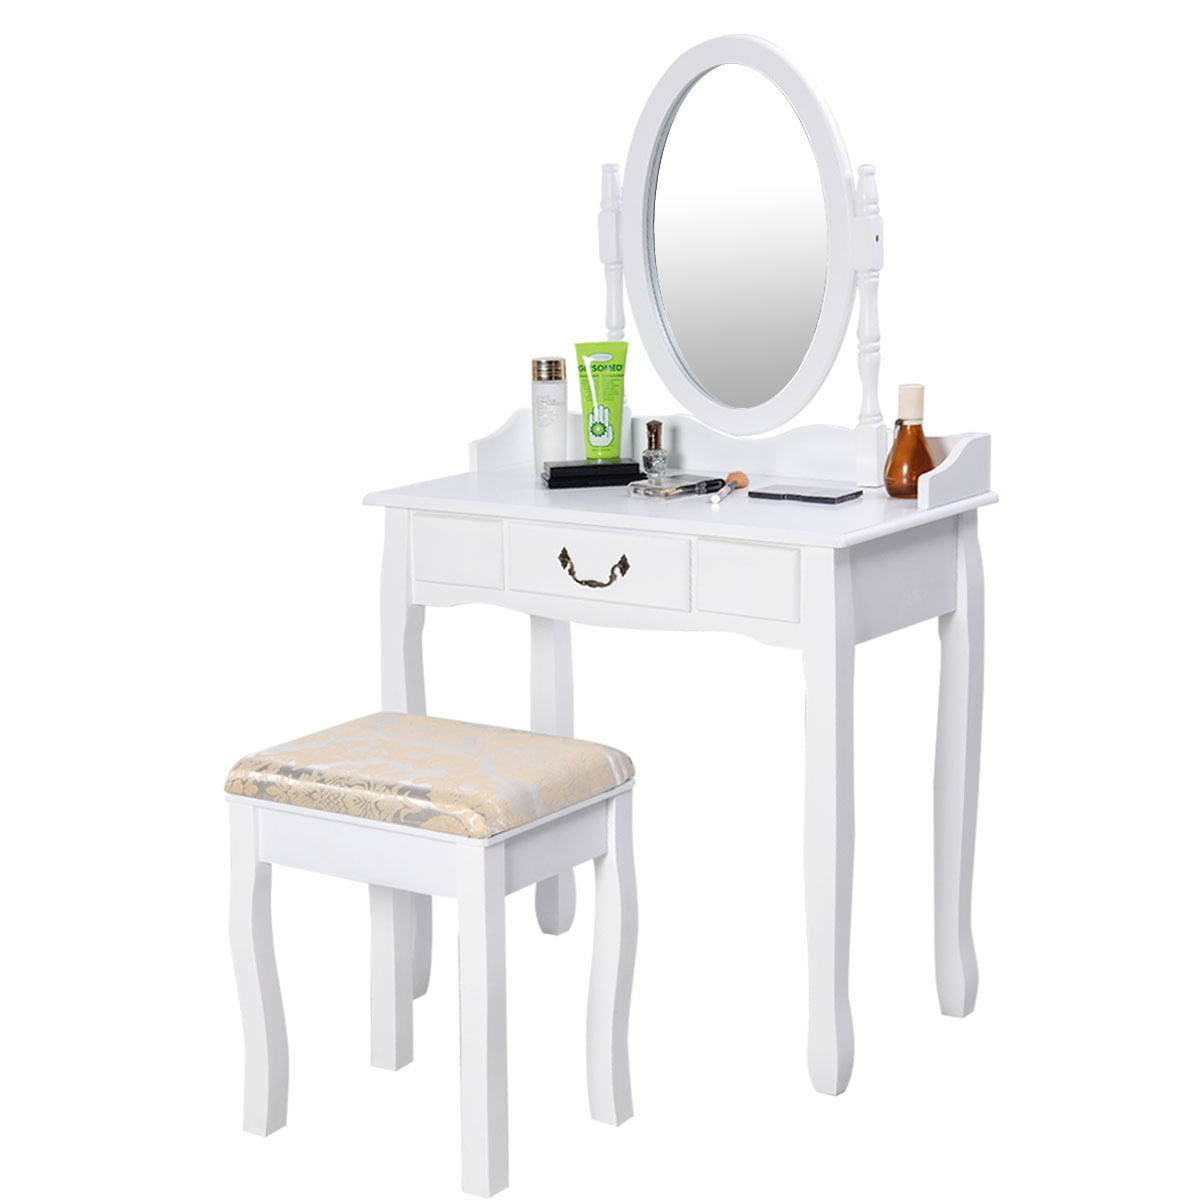 Costway Vanity Table Jewelry Makeup Desk Bench Dresser w  Stool Drawer White bathroom by Costway